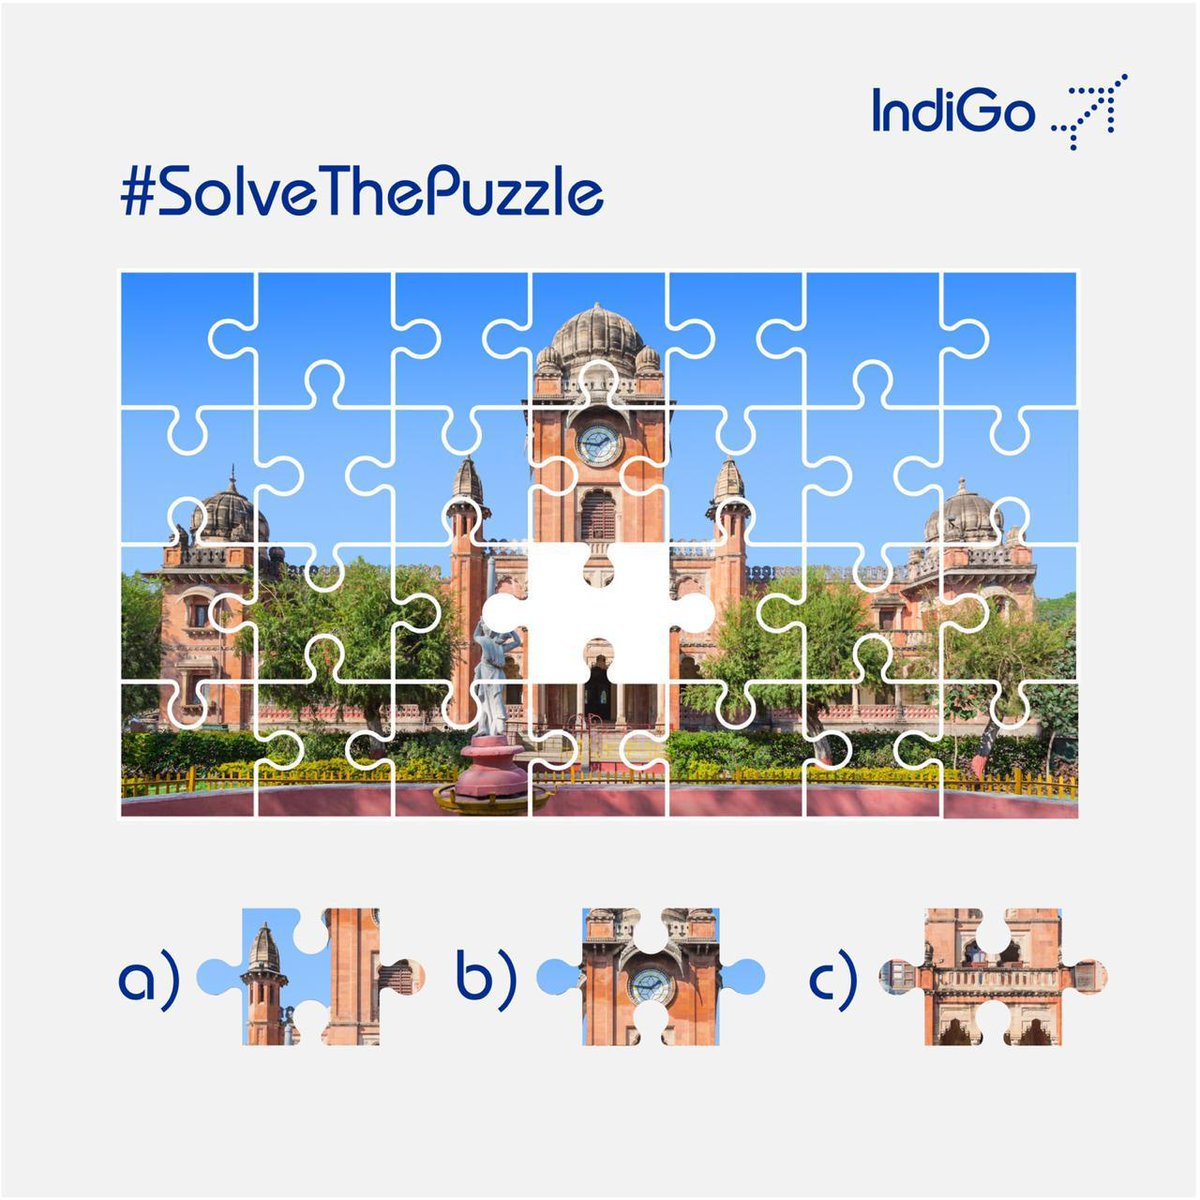 Guess which missing piece is central to this towering architectural beauty and complete the picture for us! #SolveThePuzzle #puzzle #LetsIndiGo https://t.co/XQnzZpMHmM